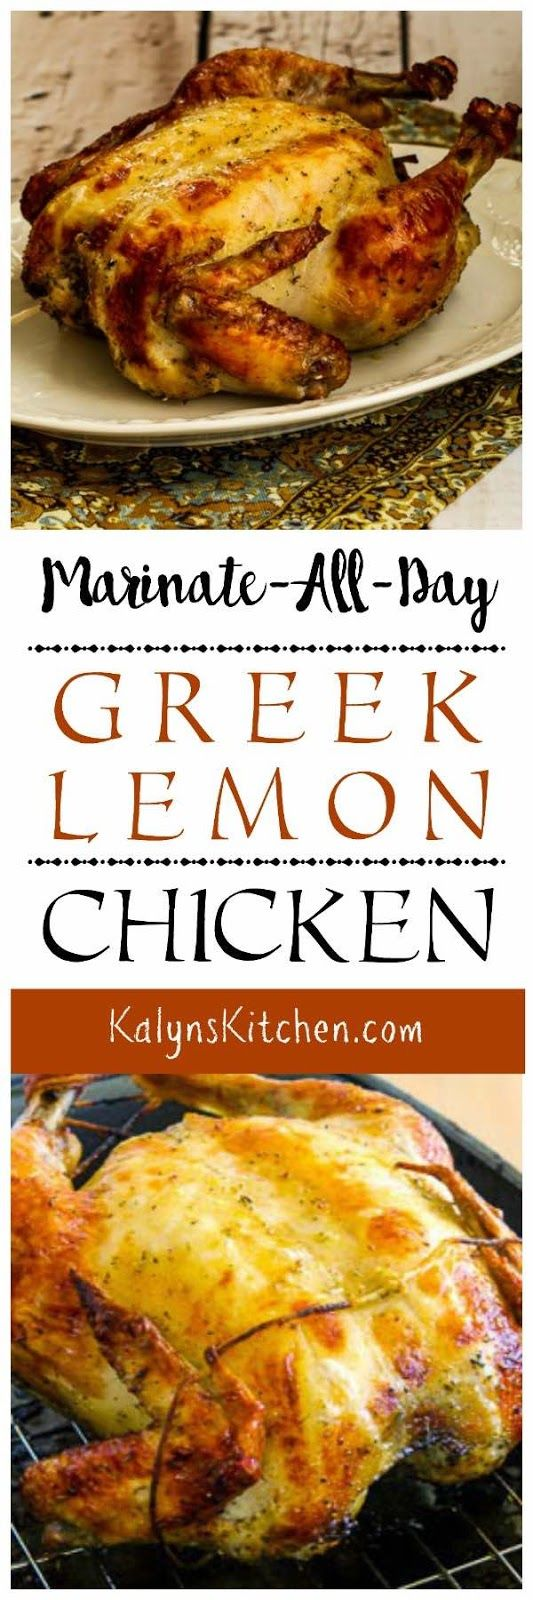 Marinate-All-Day Greek Lemon Chicken found on KalynsKitchen.com